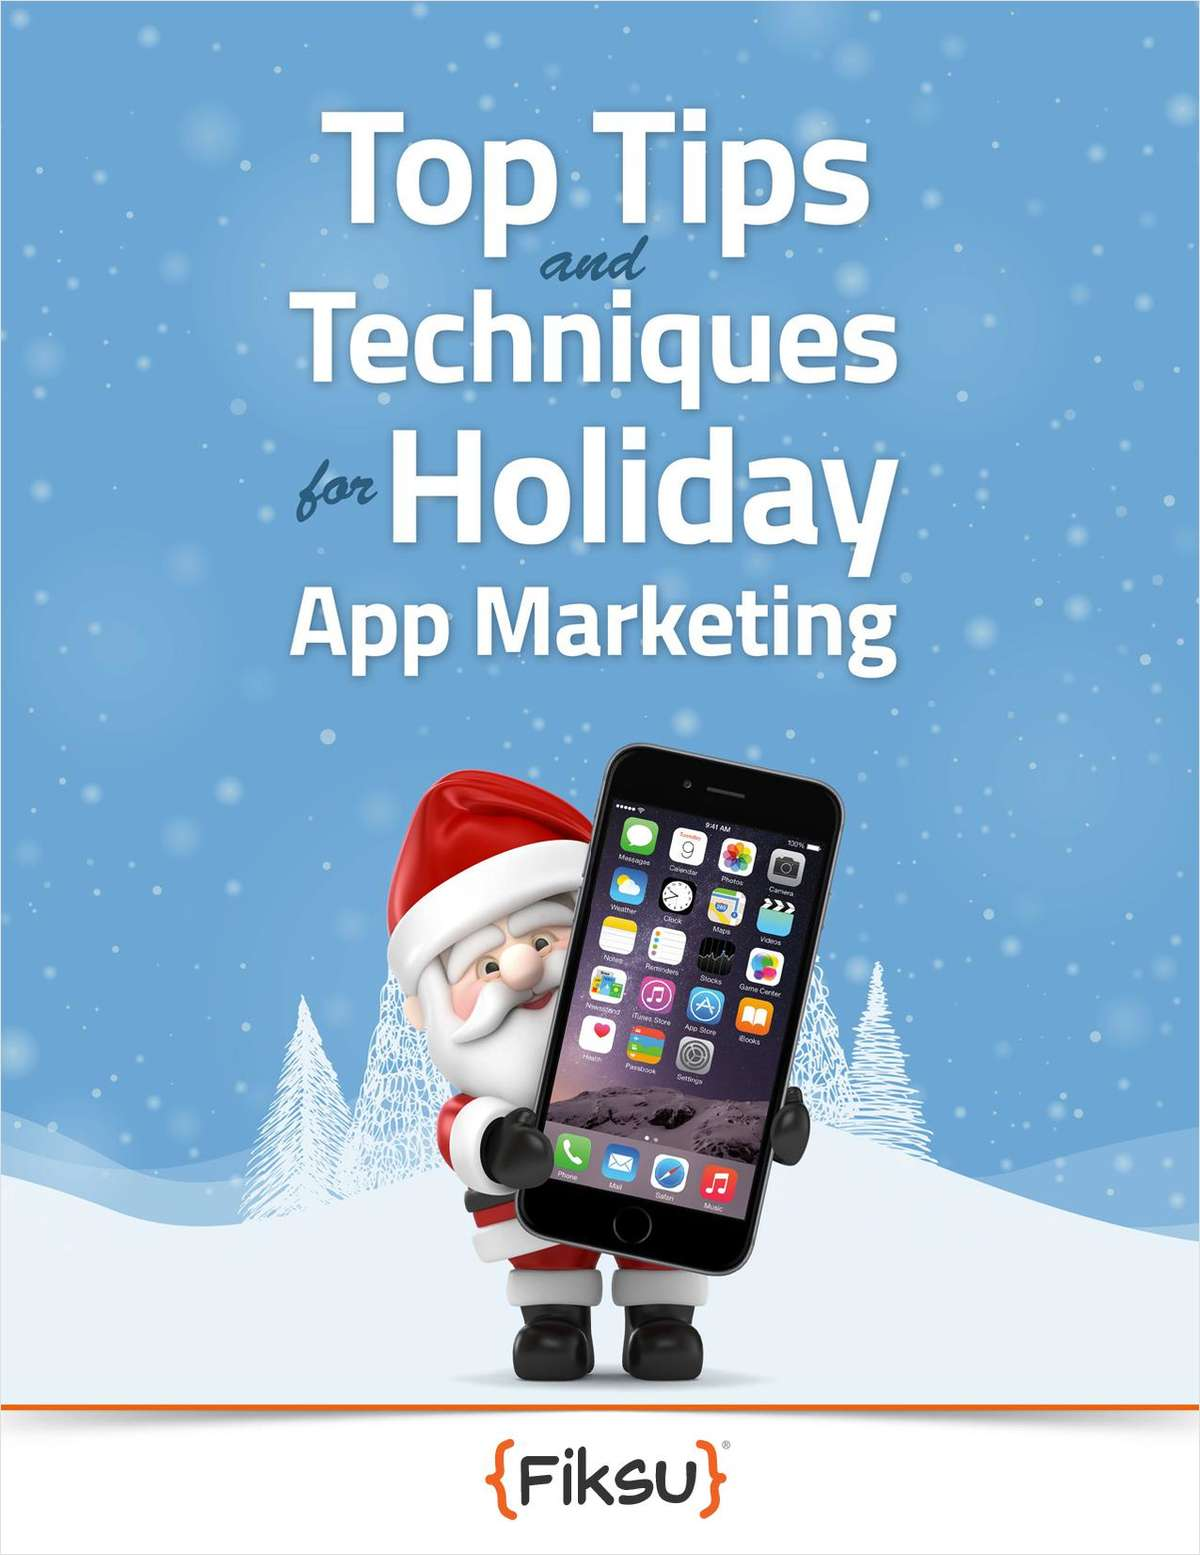 Top Tips and Techniques for Holiday App Marketing